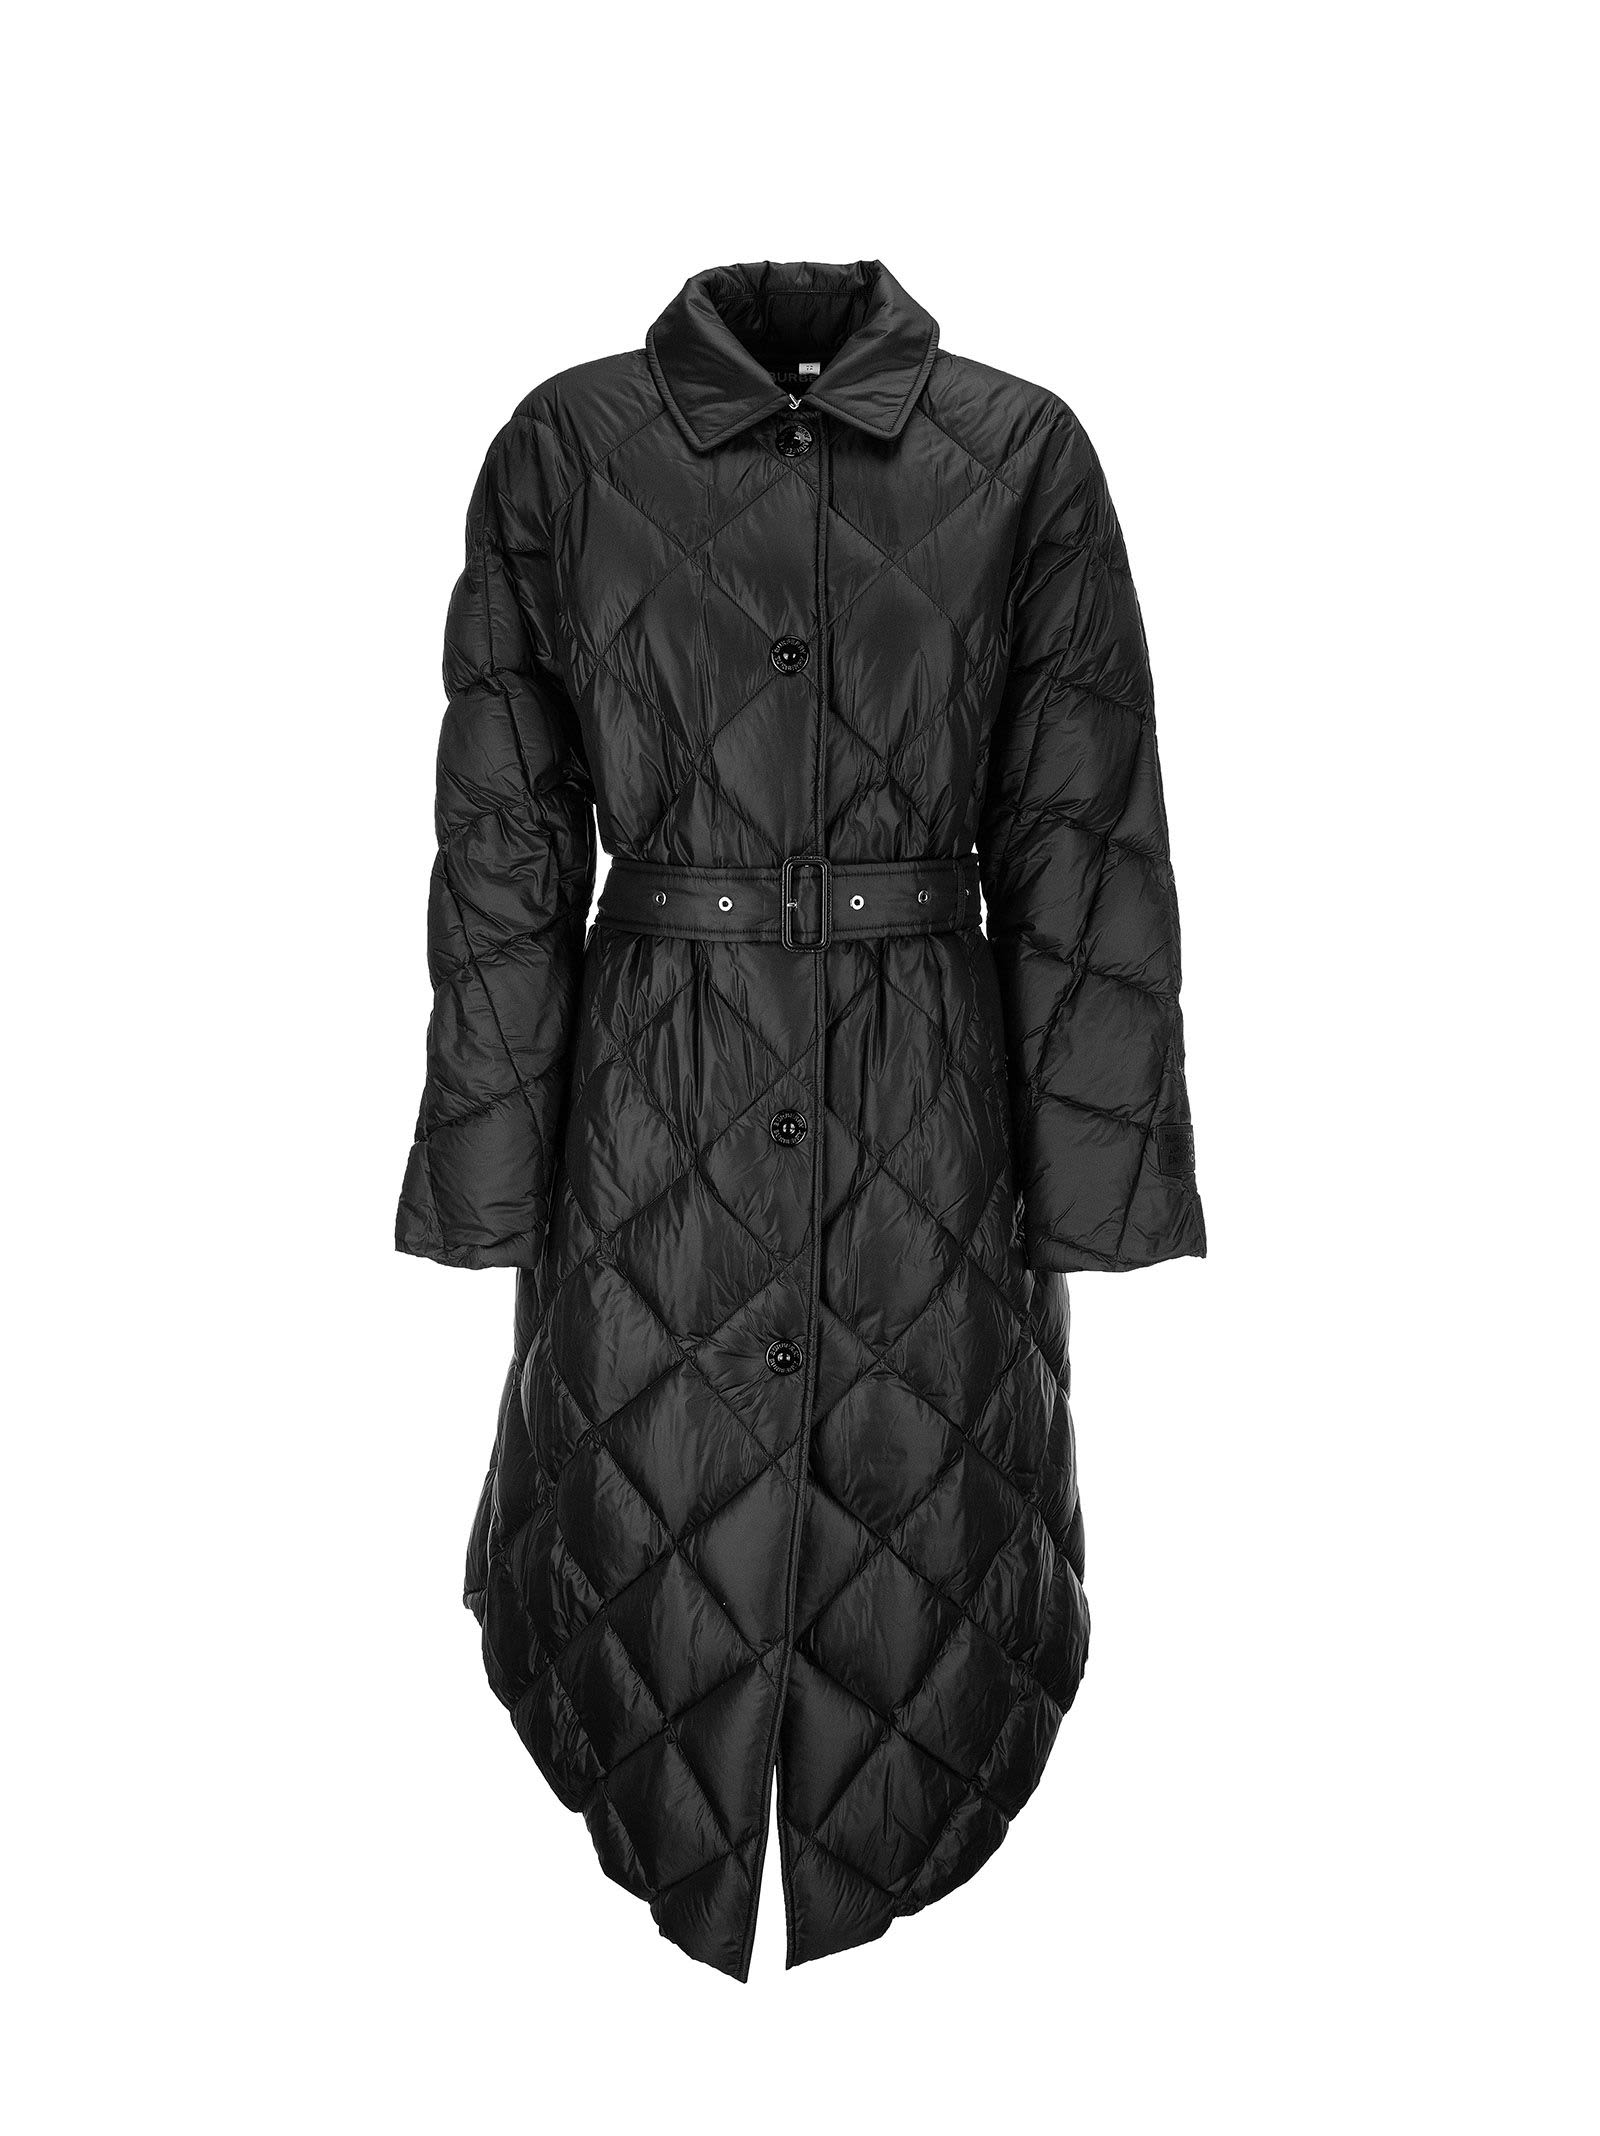 Burberry DIAMOND QUILTED COAT IN NYLON CANVAS MABLETHORPE